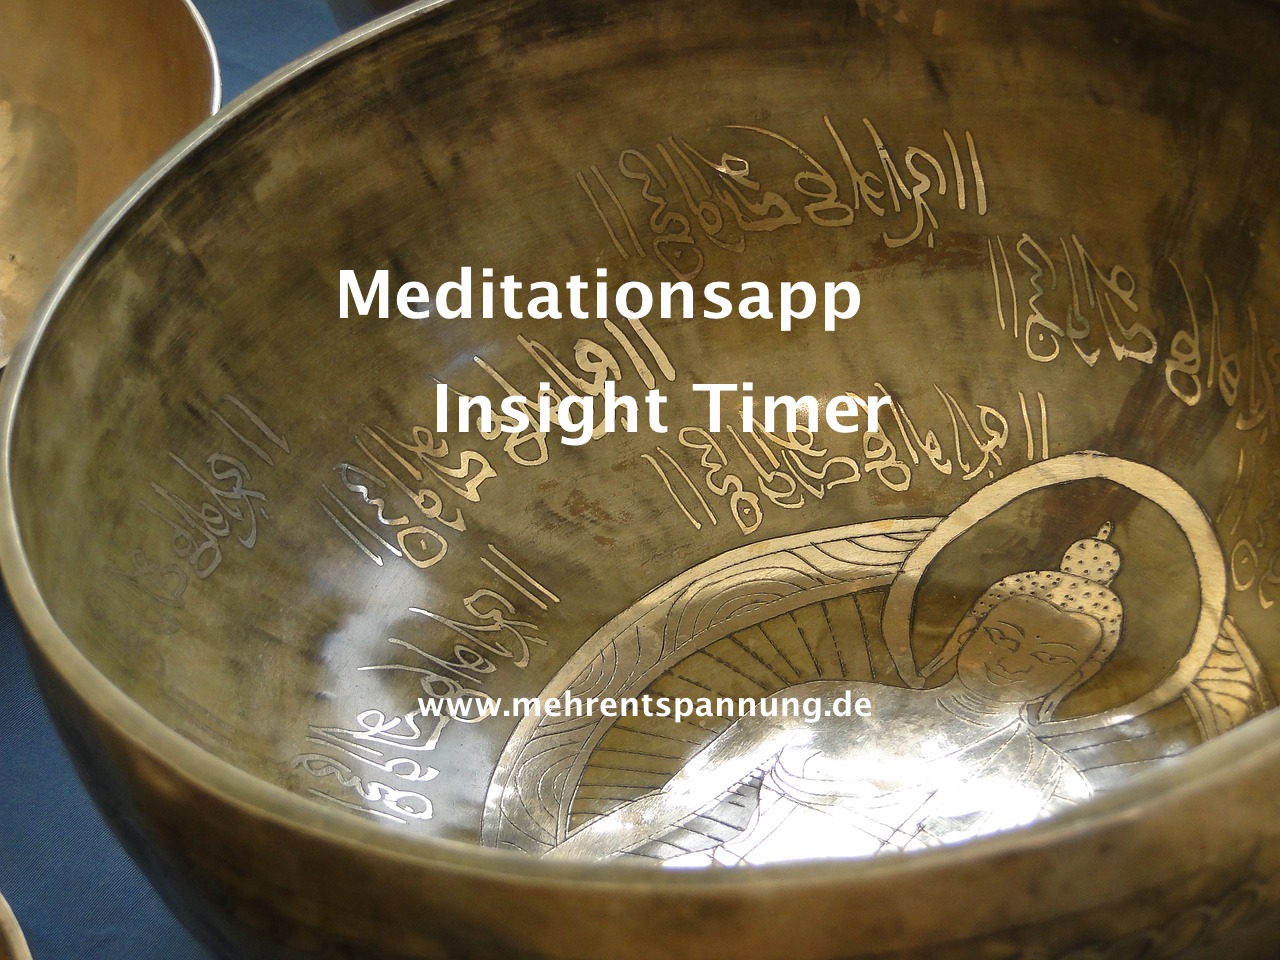 Meditationsapp - Insight Timer